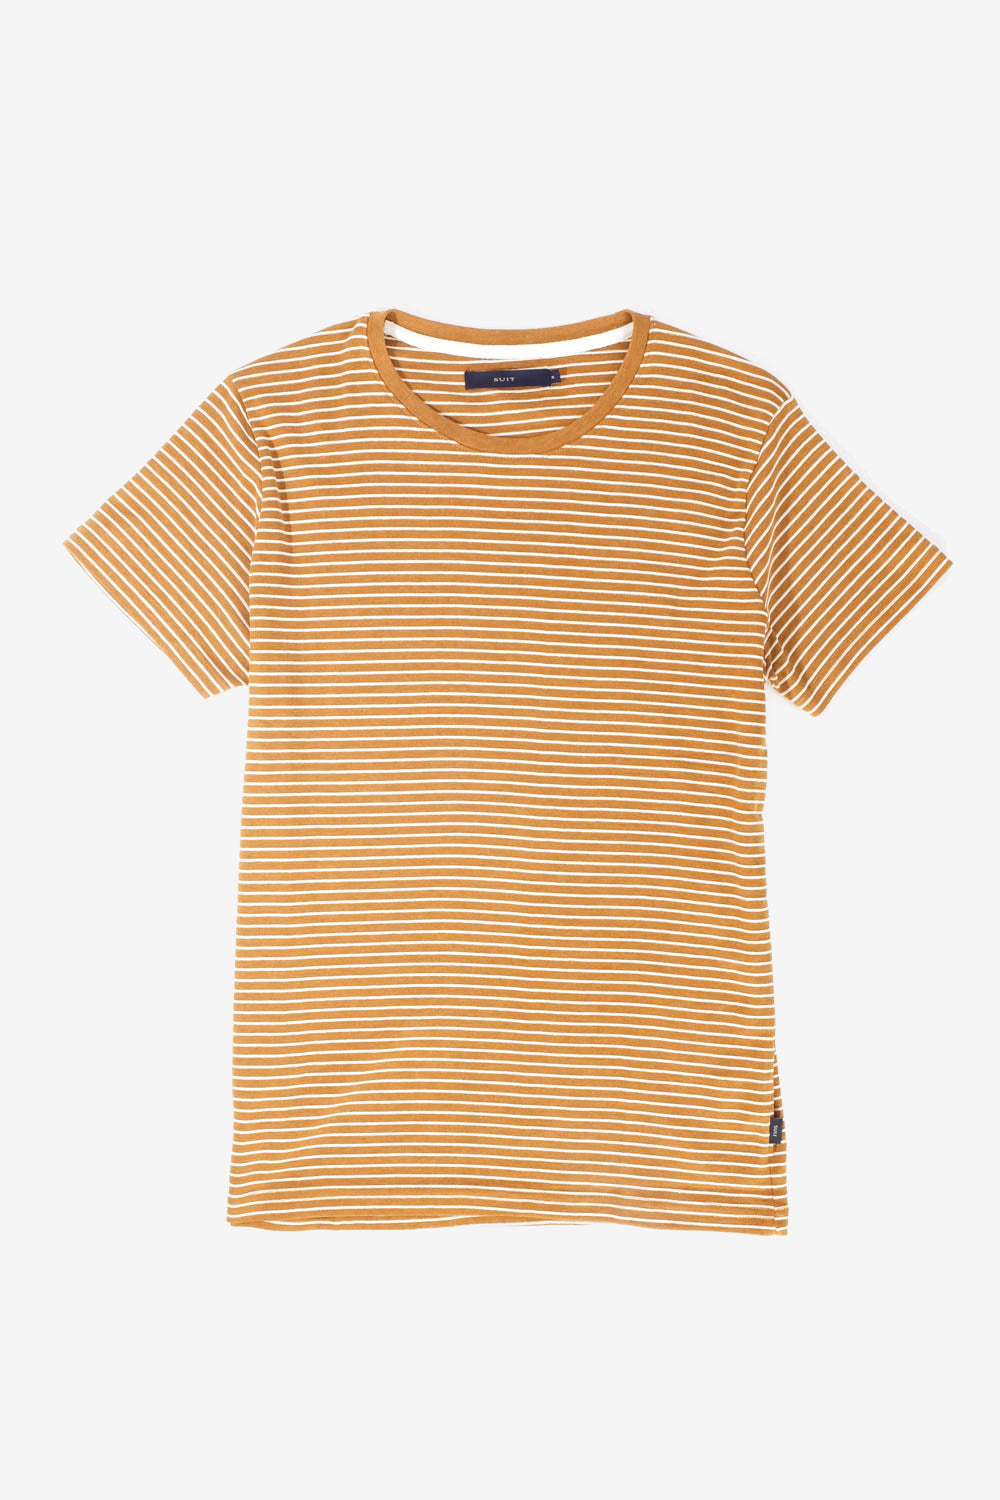 Barking Dark Yellow T-Shirt, Clothing Men, Suit - Six and Sons